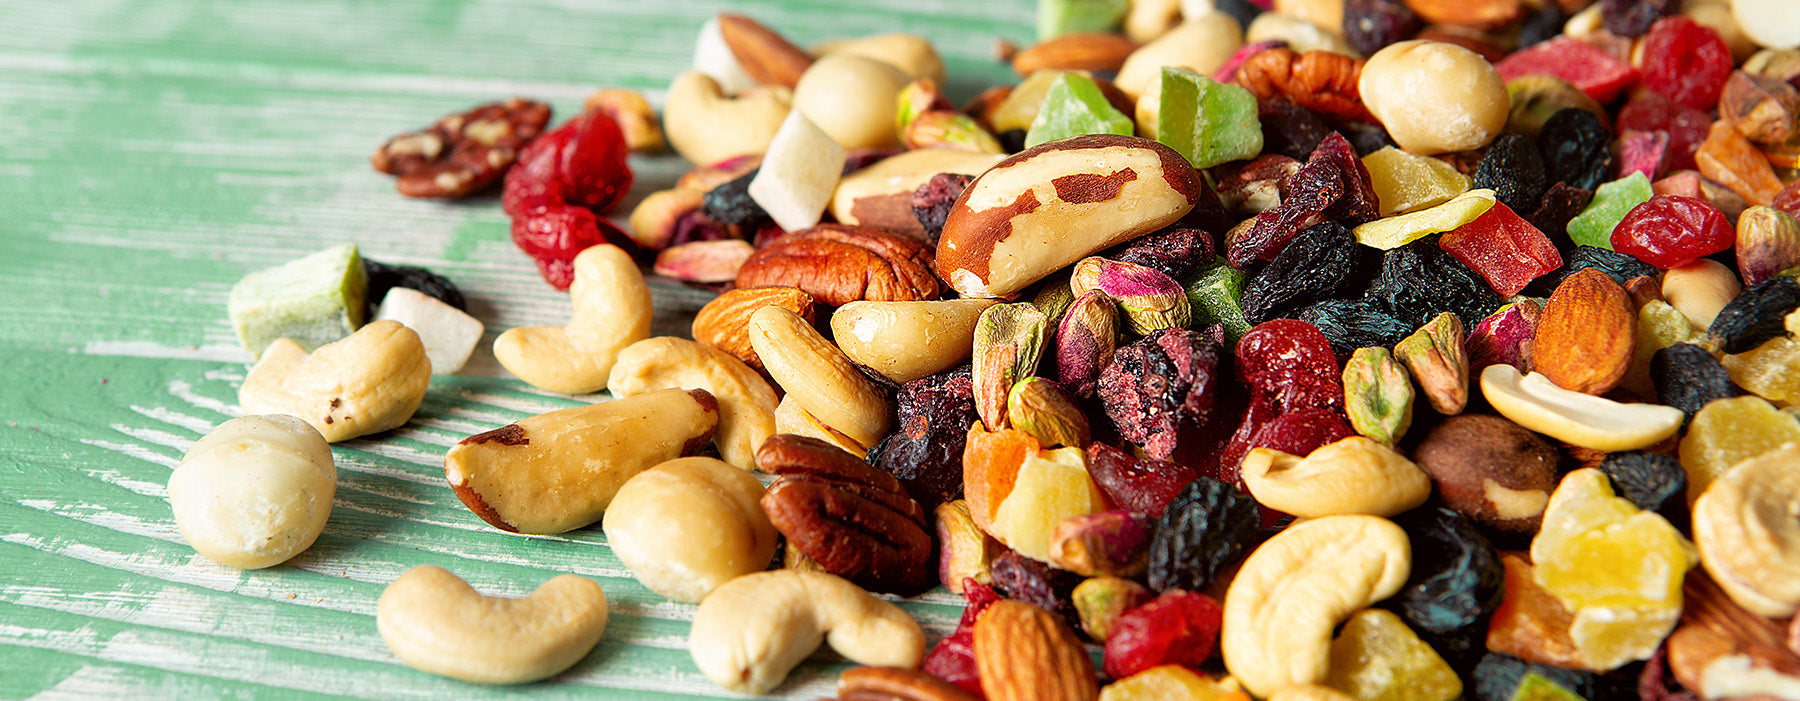 Finest quality Dried Nuts and Fruits from Iran, Turkey and Azerbaijan.